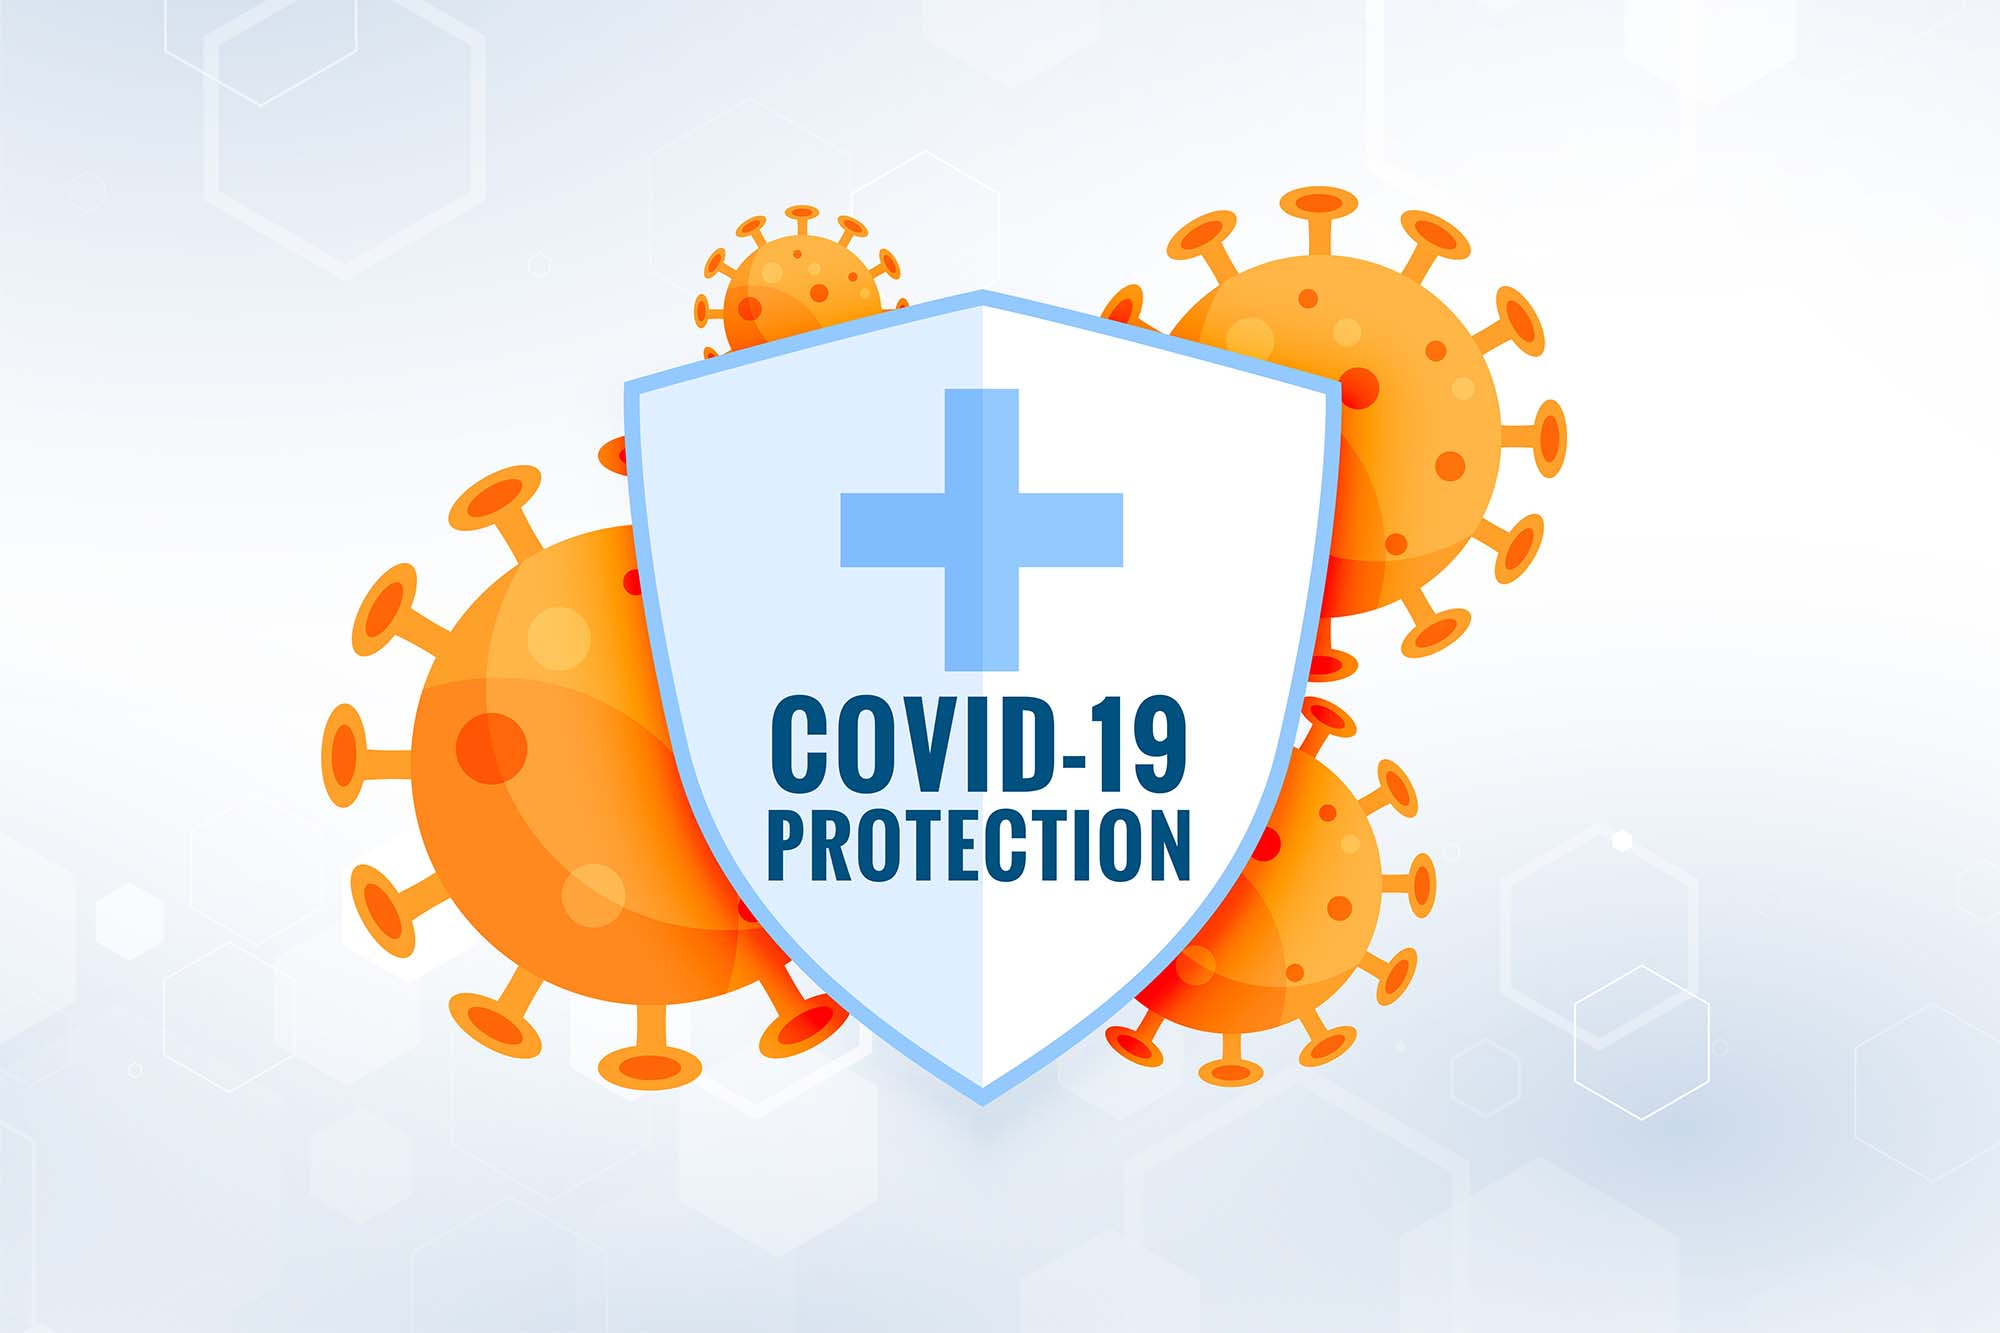 COVID PROTECTION